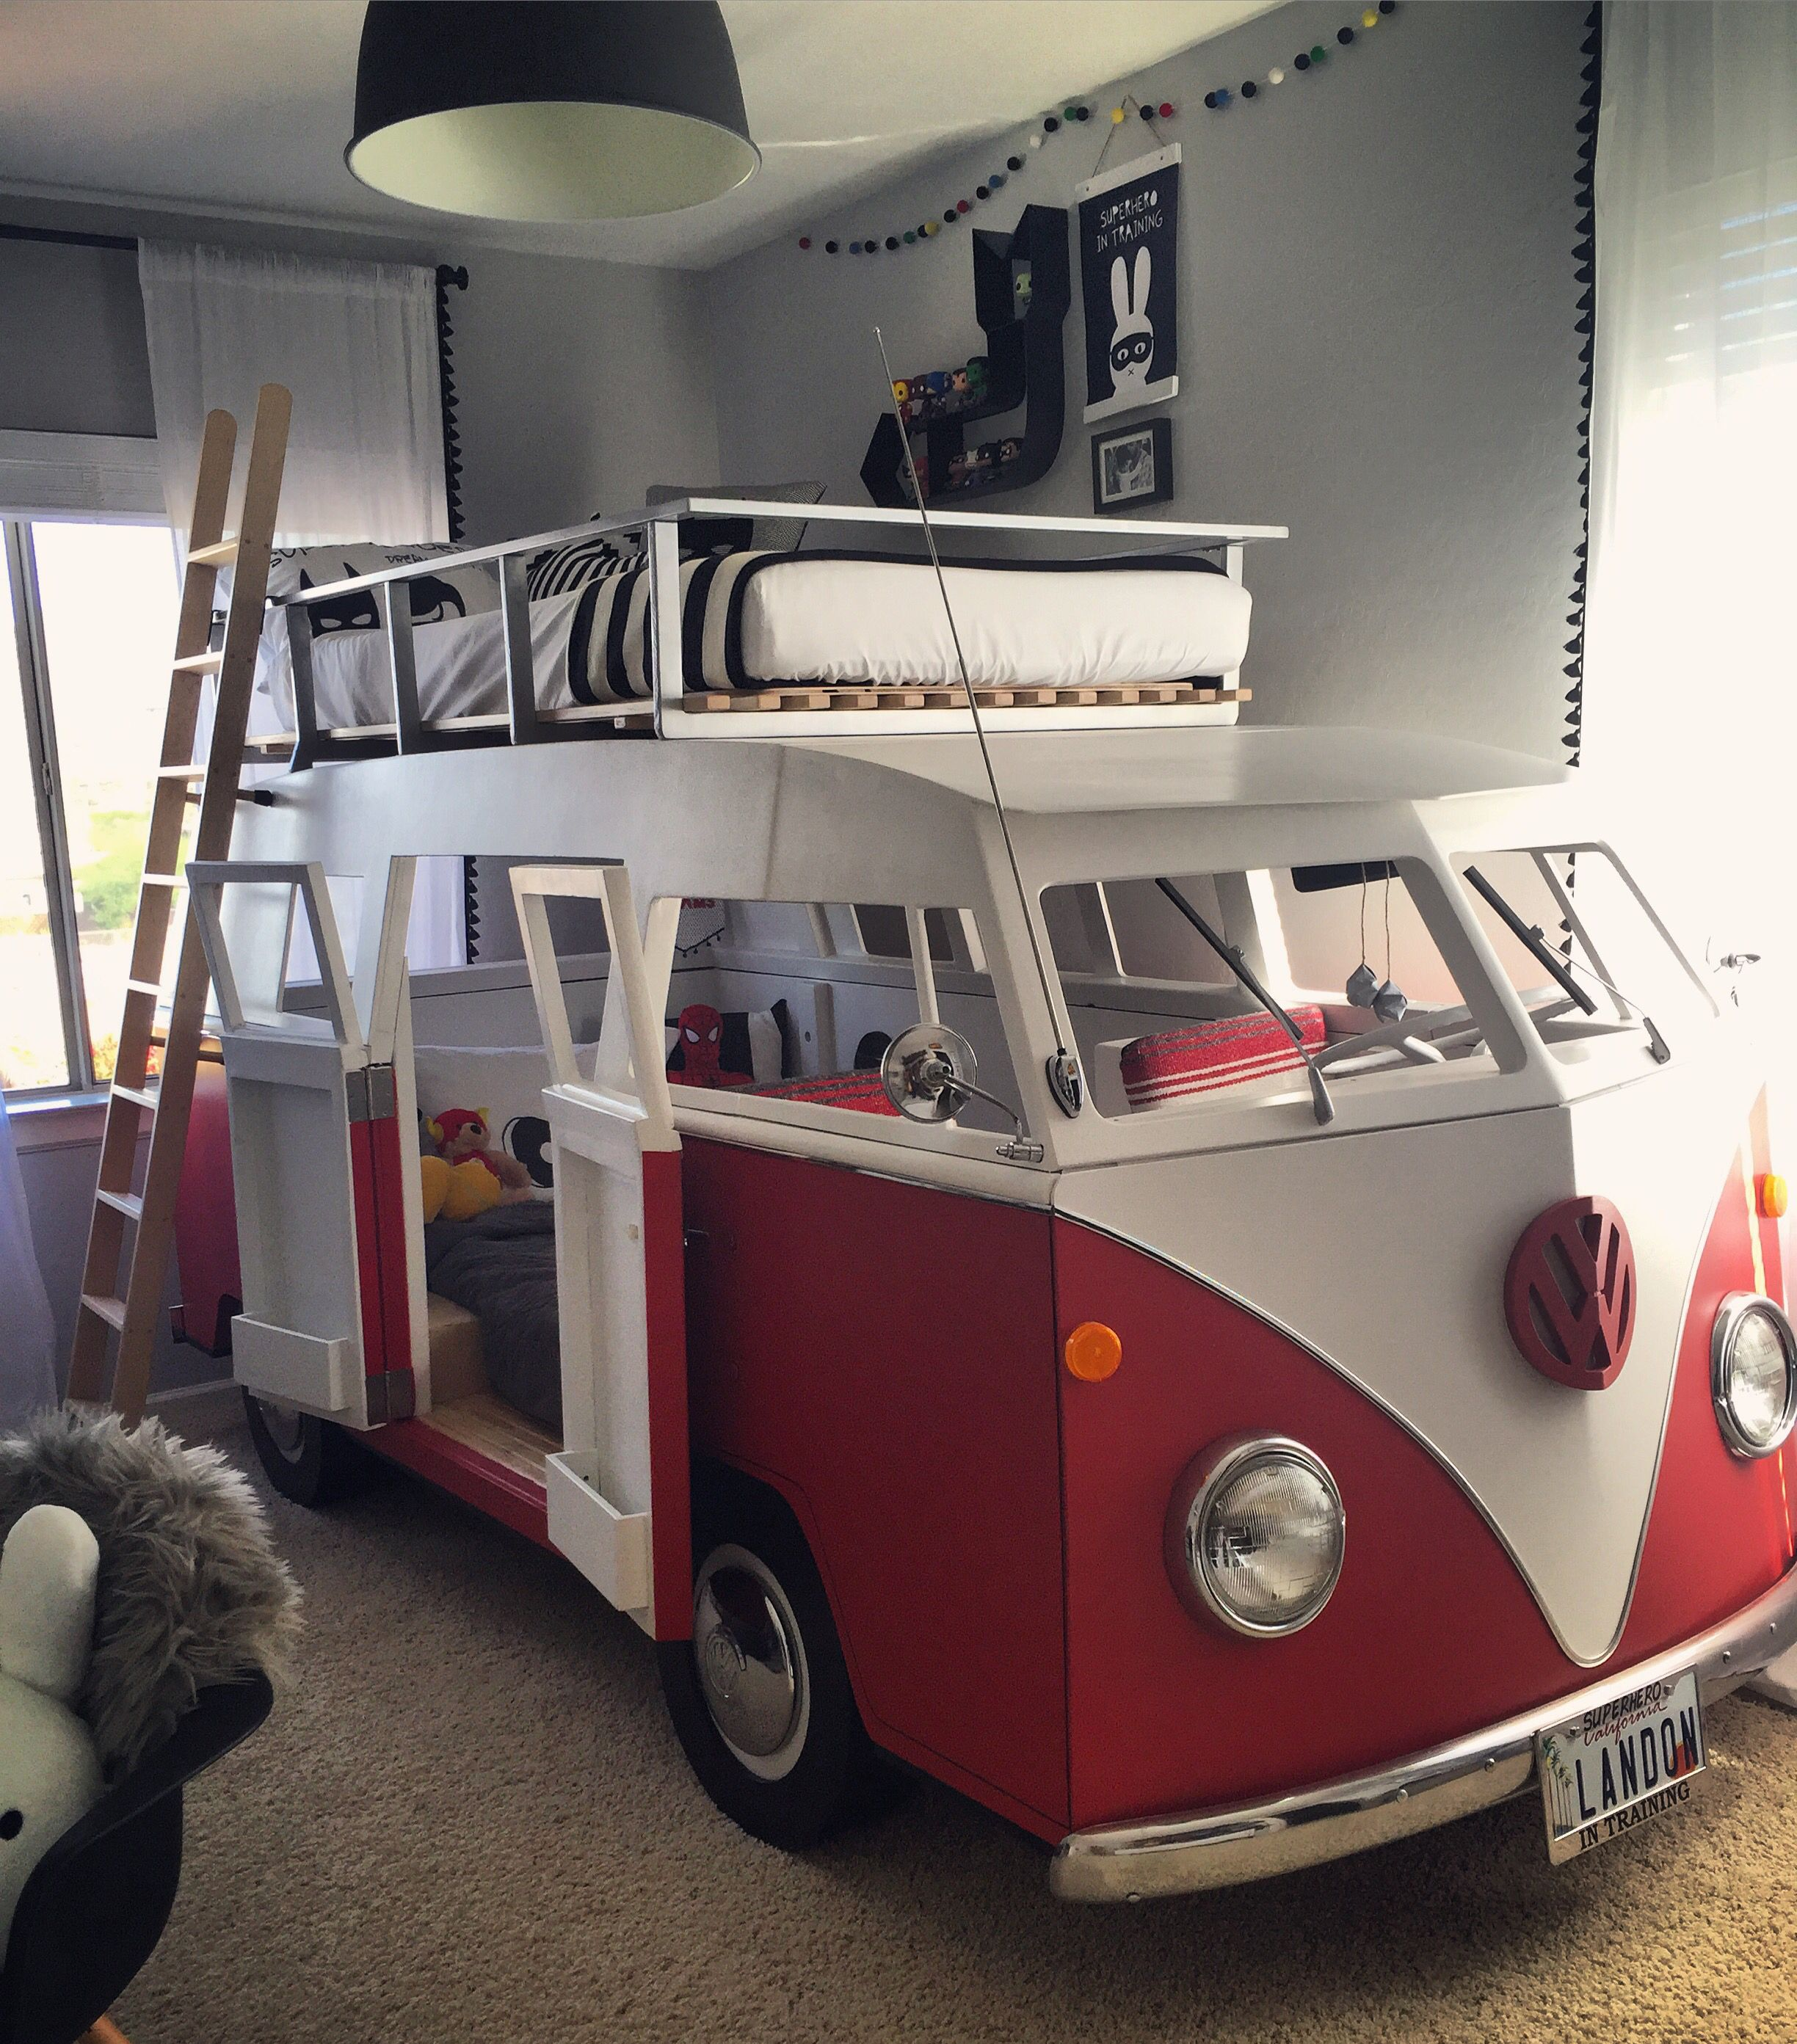 VW bus camping van bunk bed Retro Vintage Modern designed and